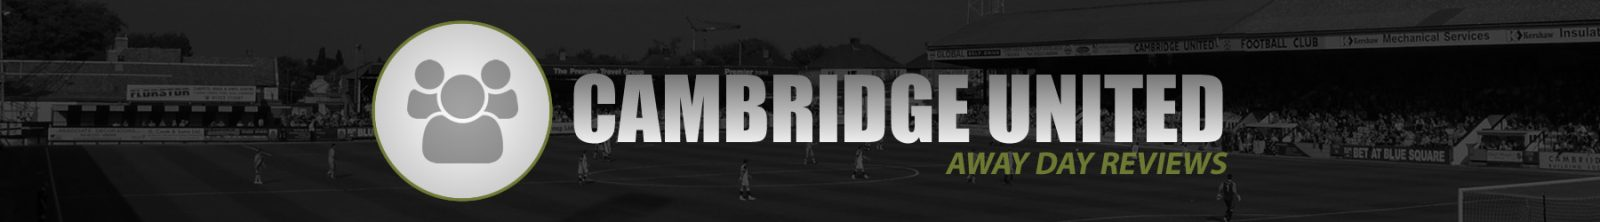 Review Cambridge United